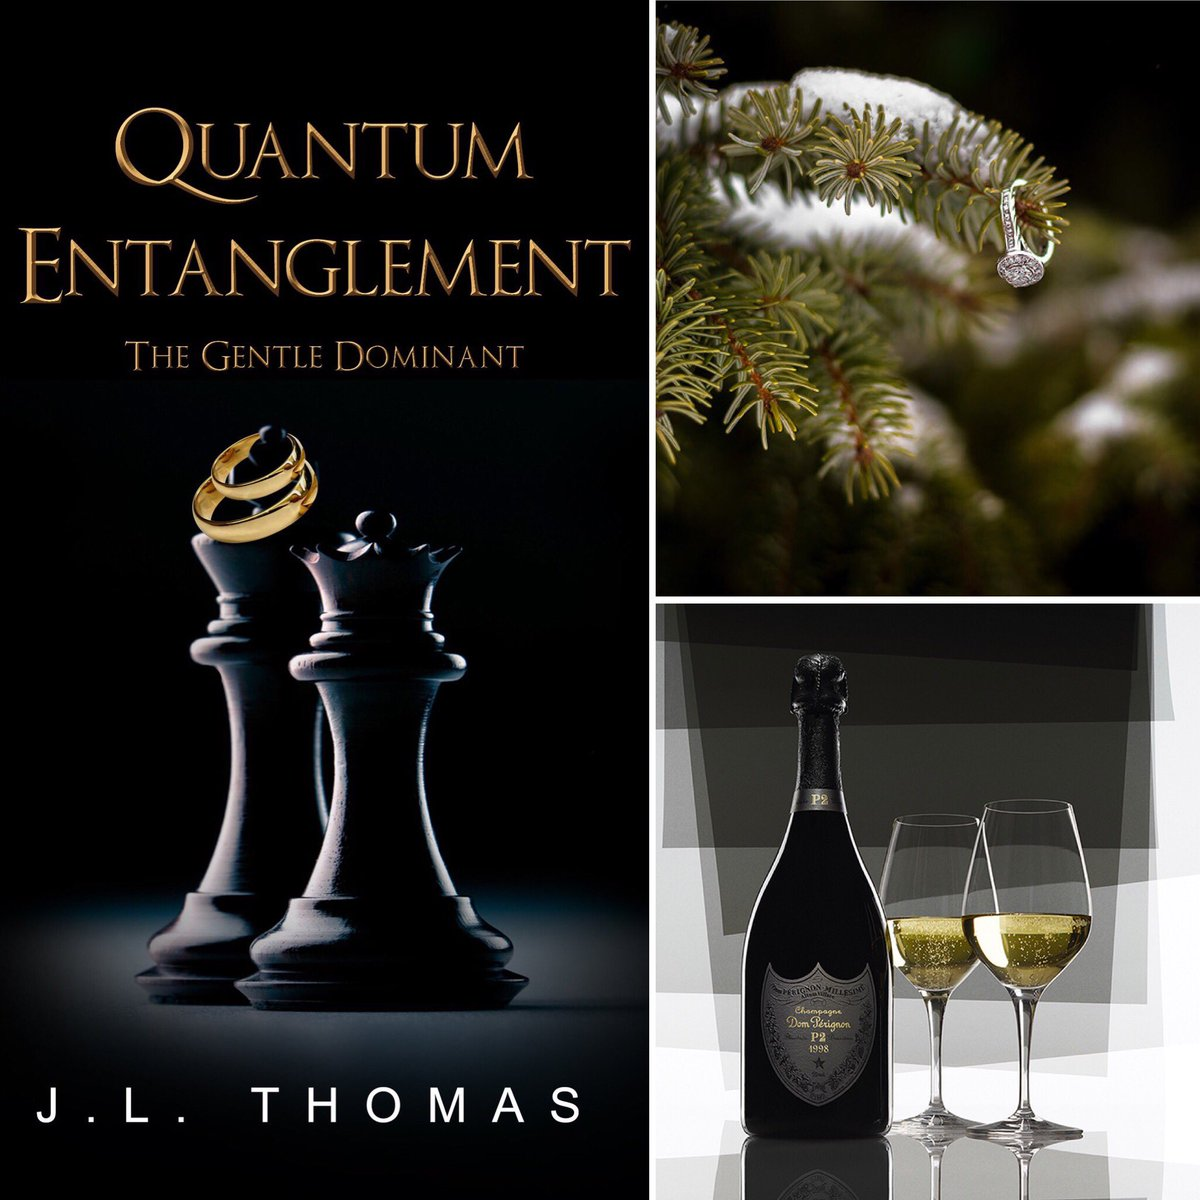 QUANTUM ENTANGLEMENT BOOK TWO OF THE GENTLE DOMINANT BOOK SERIES LAUNCHES JANUARY 2018  https:// pegasuspublishers.com/authors/j-l-th omas &nbsp; …  #BookBoost #BookBuzzr #IAN1 #IARTG #RRBC #T4US #EARTG #LPRTG #amwriting #amreading #SNRTG #indiebooksbeseen #Christmas  #TYB #mustread #BookPromo #BYNR #ASMSG #tweetit <br>http://pic.twitter.com/eB9tFwyzZa